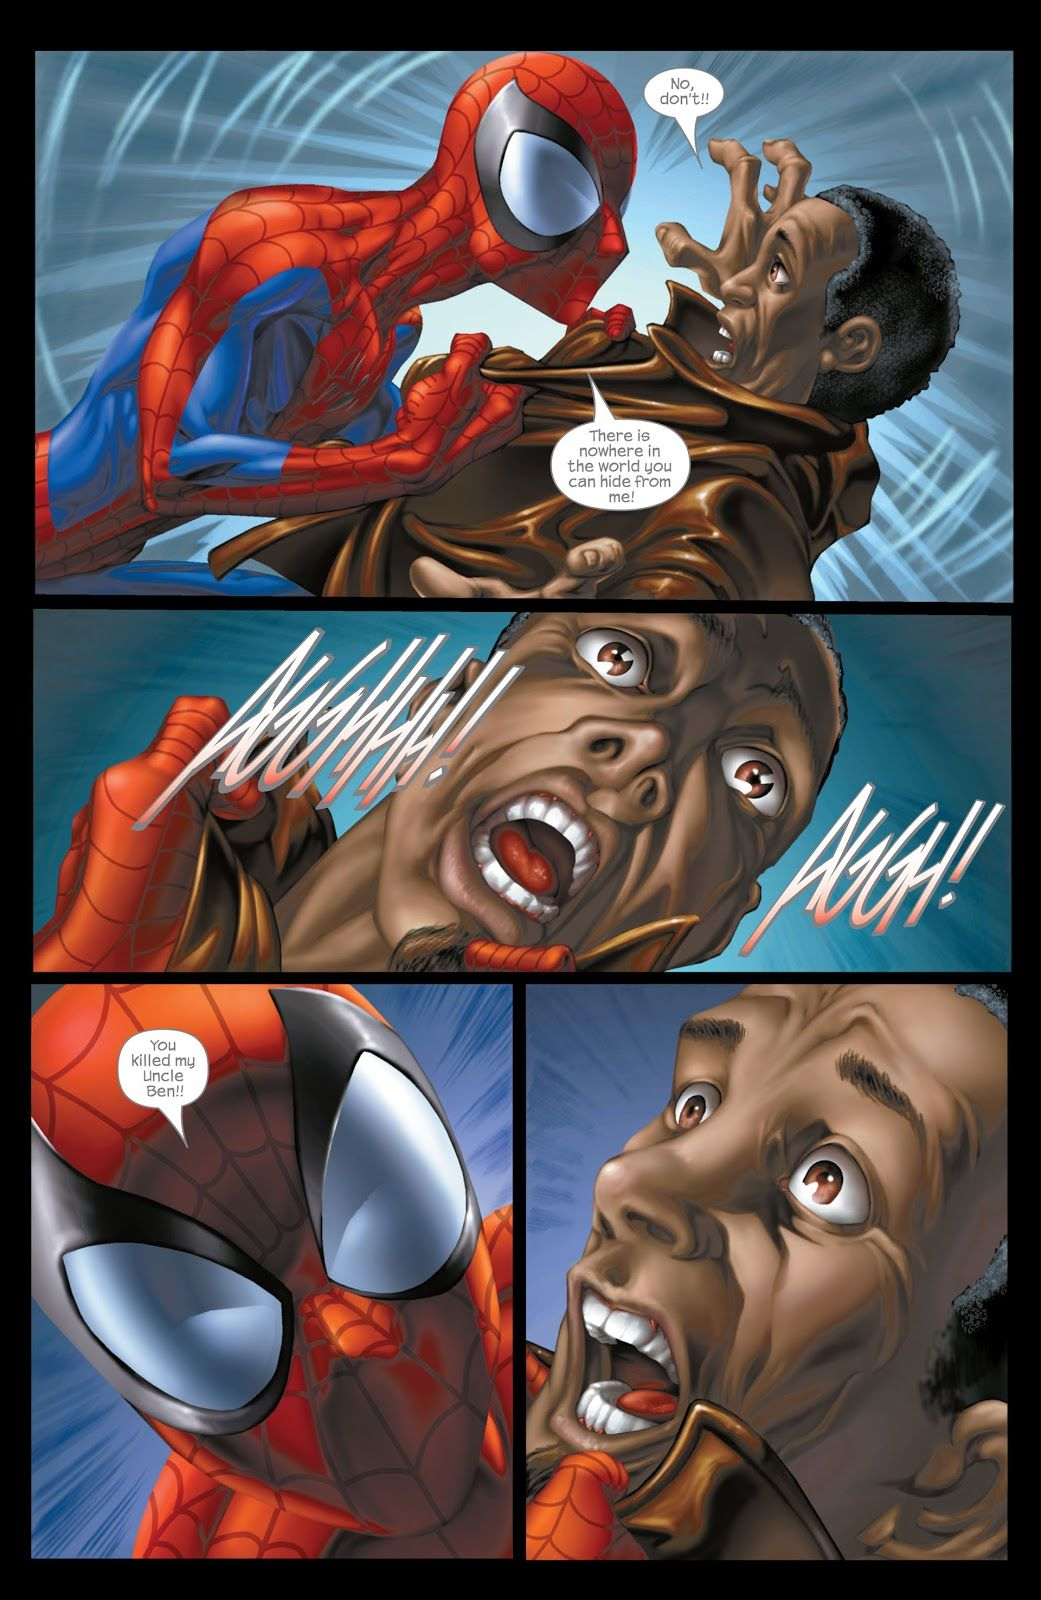 Ultimate Spider Man 2000 Issue 37 Read Ultimate Spider Man 2000 Issue 37 Comic Online In High Quality Marvel Spiderman Art Ultimate Spiderman Spiderman